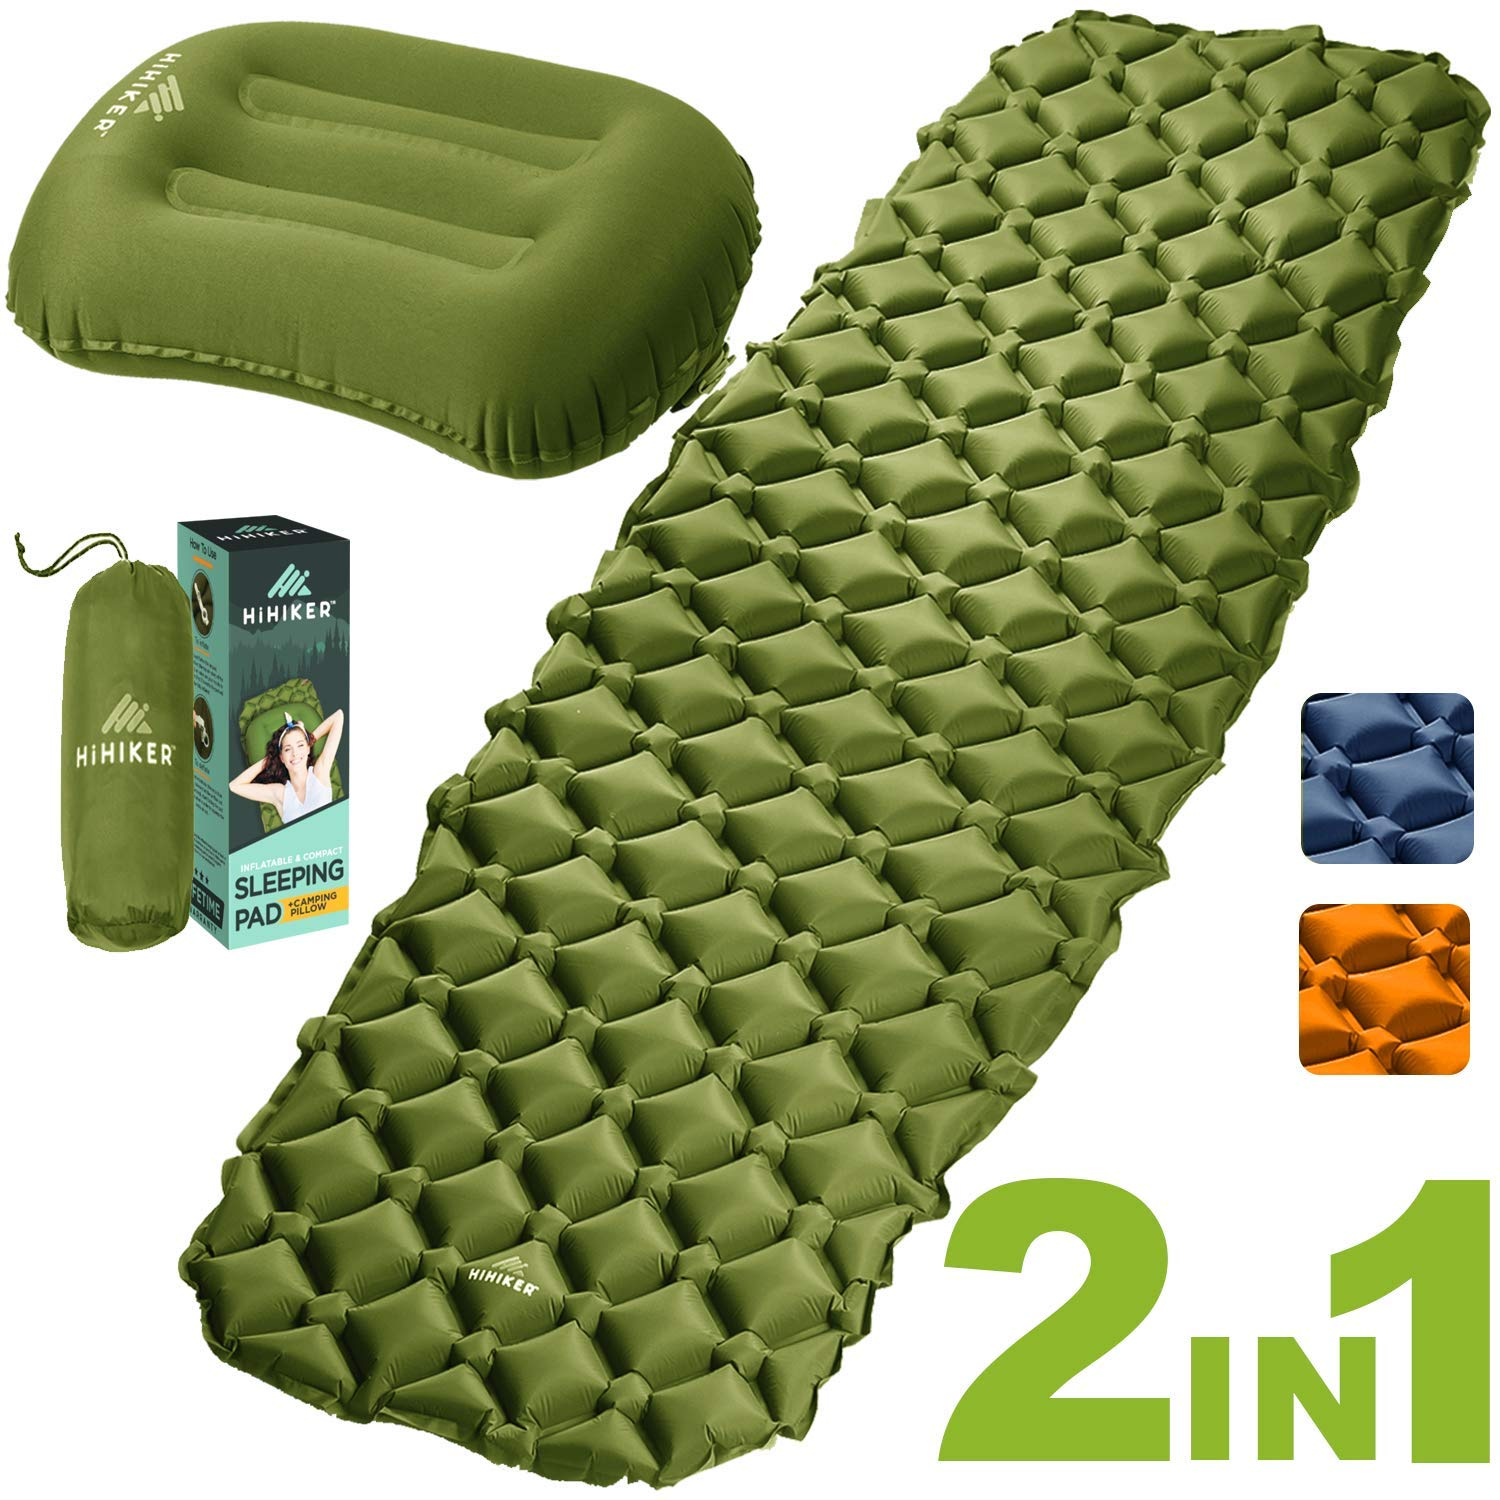 HiHiker Camping Sleeping Pad + Inflatable Travel Pillow - Ultralight Backpacking Air Mattress w/Compact Carrying Bag -Sleeping Mat for Hiking Traveling & Outdoor Activities (Green) by HiHiker